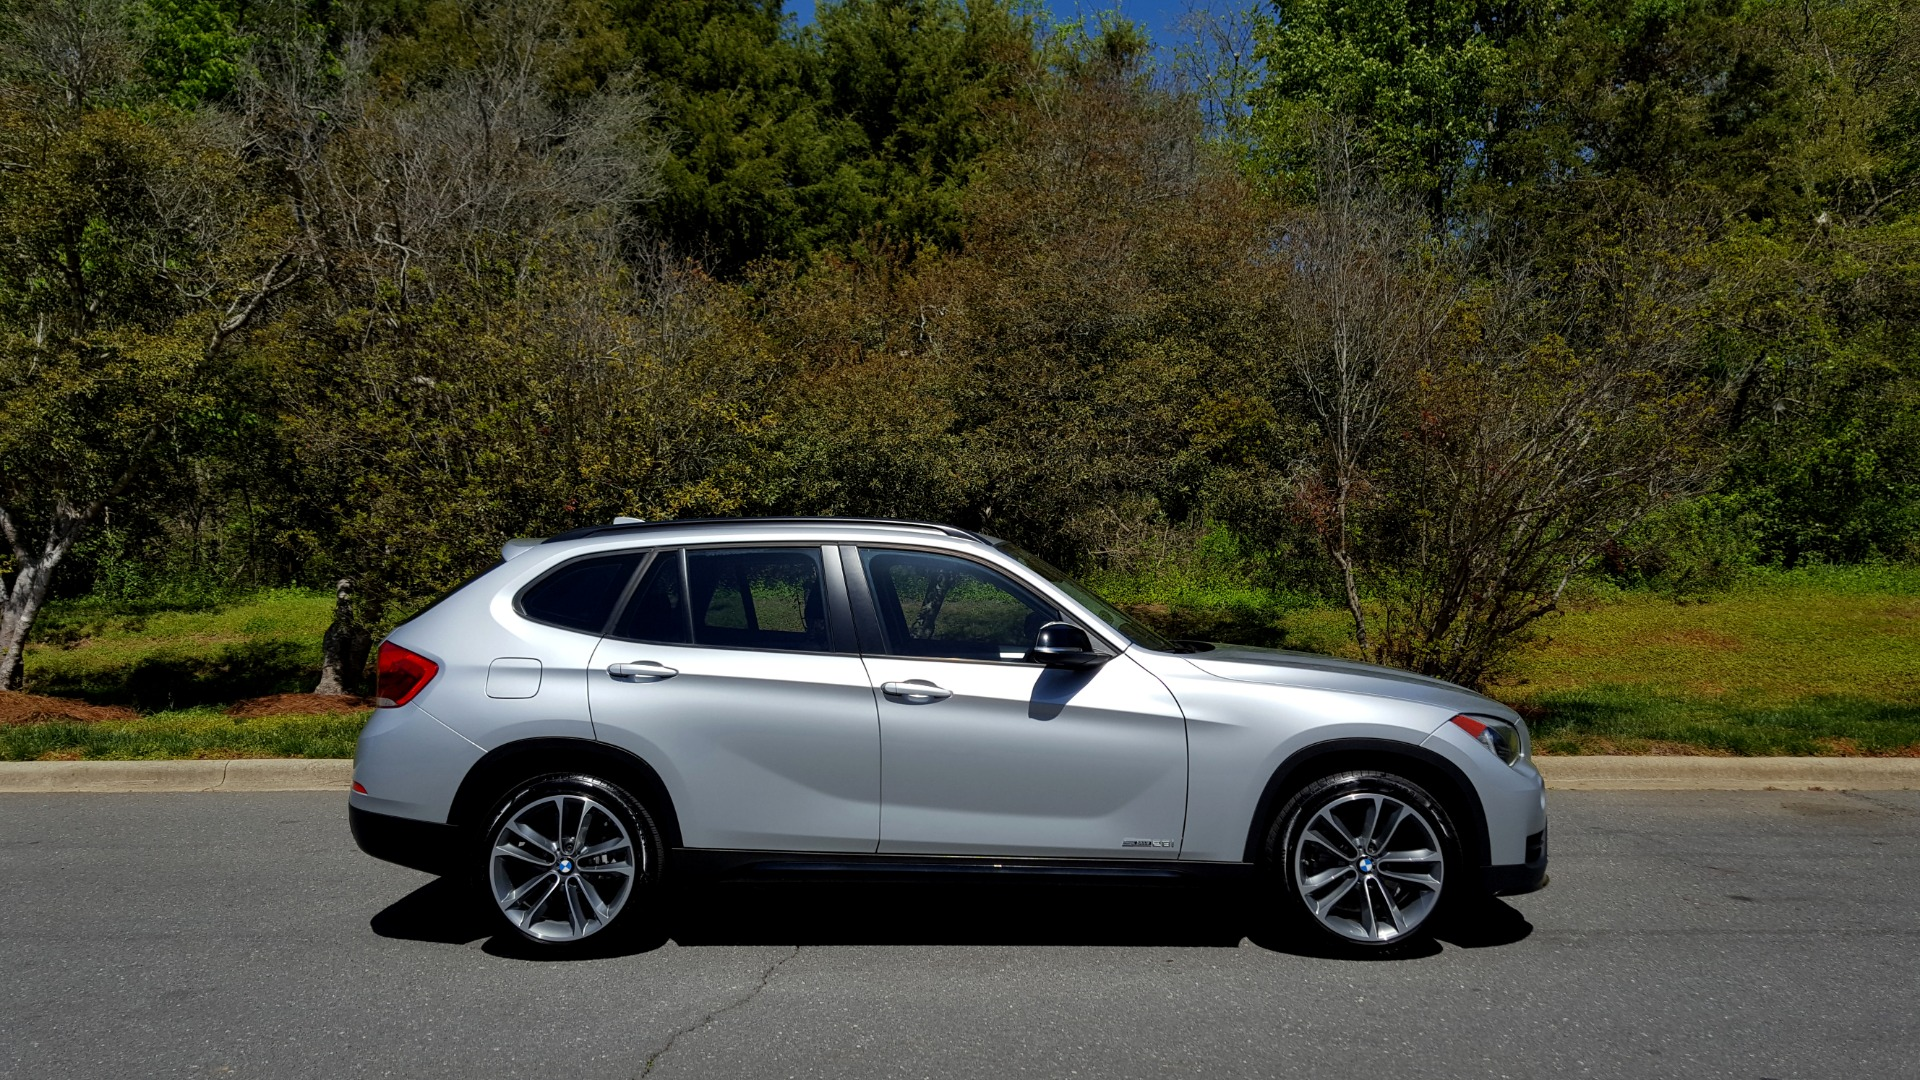 Used 2015 BMW X1 SDRIVE28I / SPORT LINE / PANO-ROOF / HTD STS / DUAL-ZONE CLIMATE for sale Sold at Formula Imports in Charlotte NC 28227 5